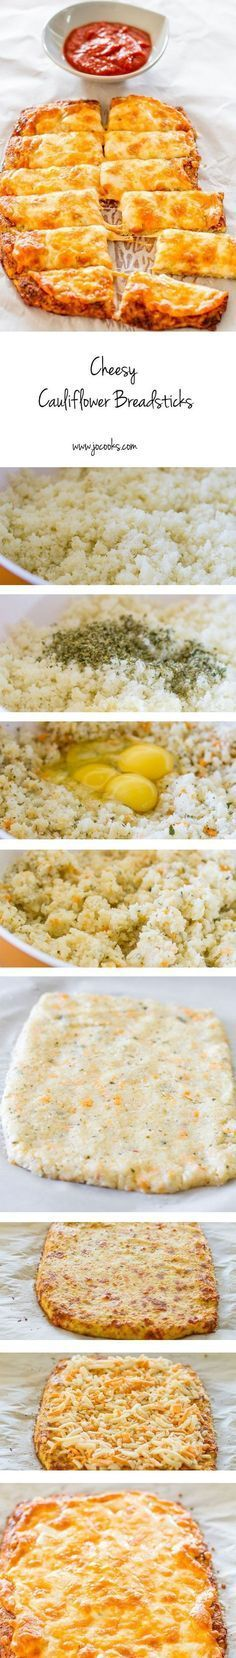 Cheesy Cauliflower Breadsticks – gluten free, low carb, cheesy cauliflower breadsticks! This recipe is a winner and a keeper!